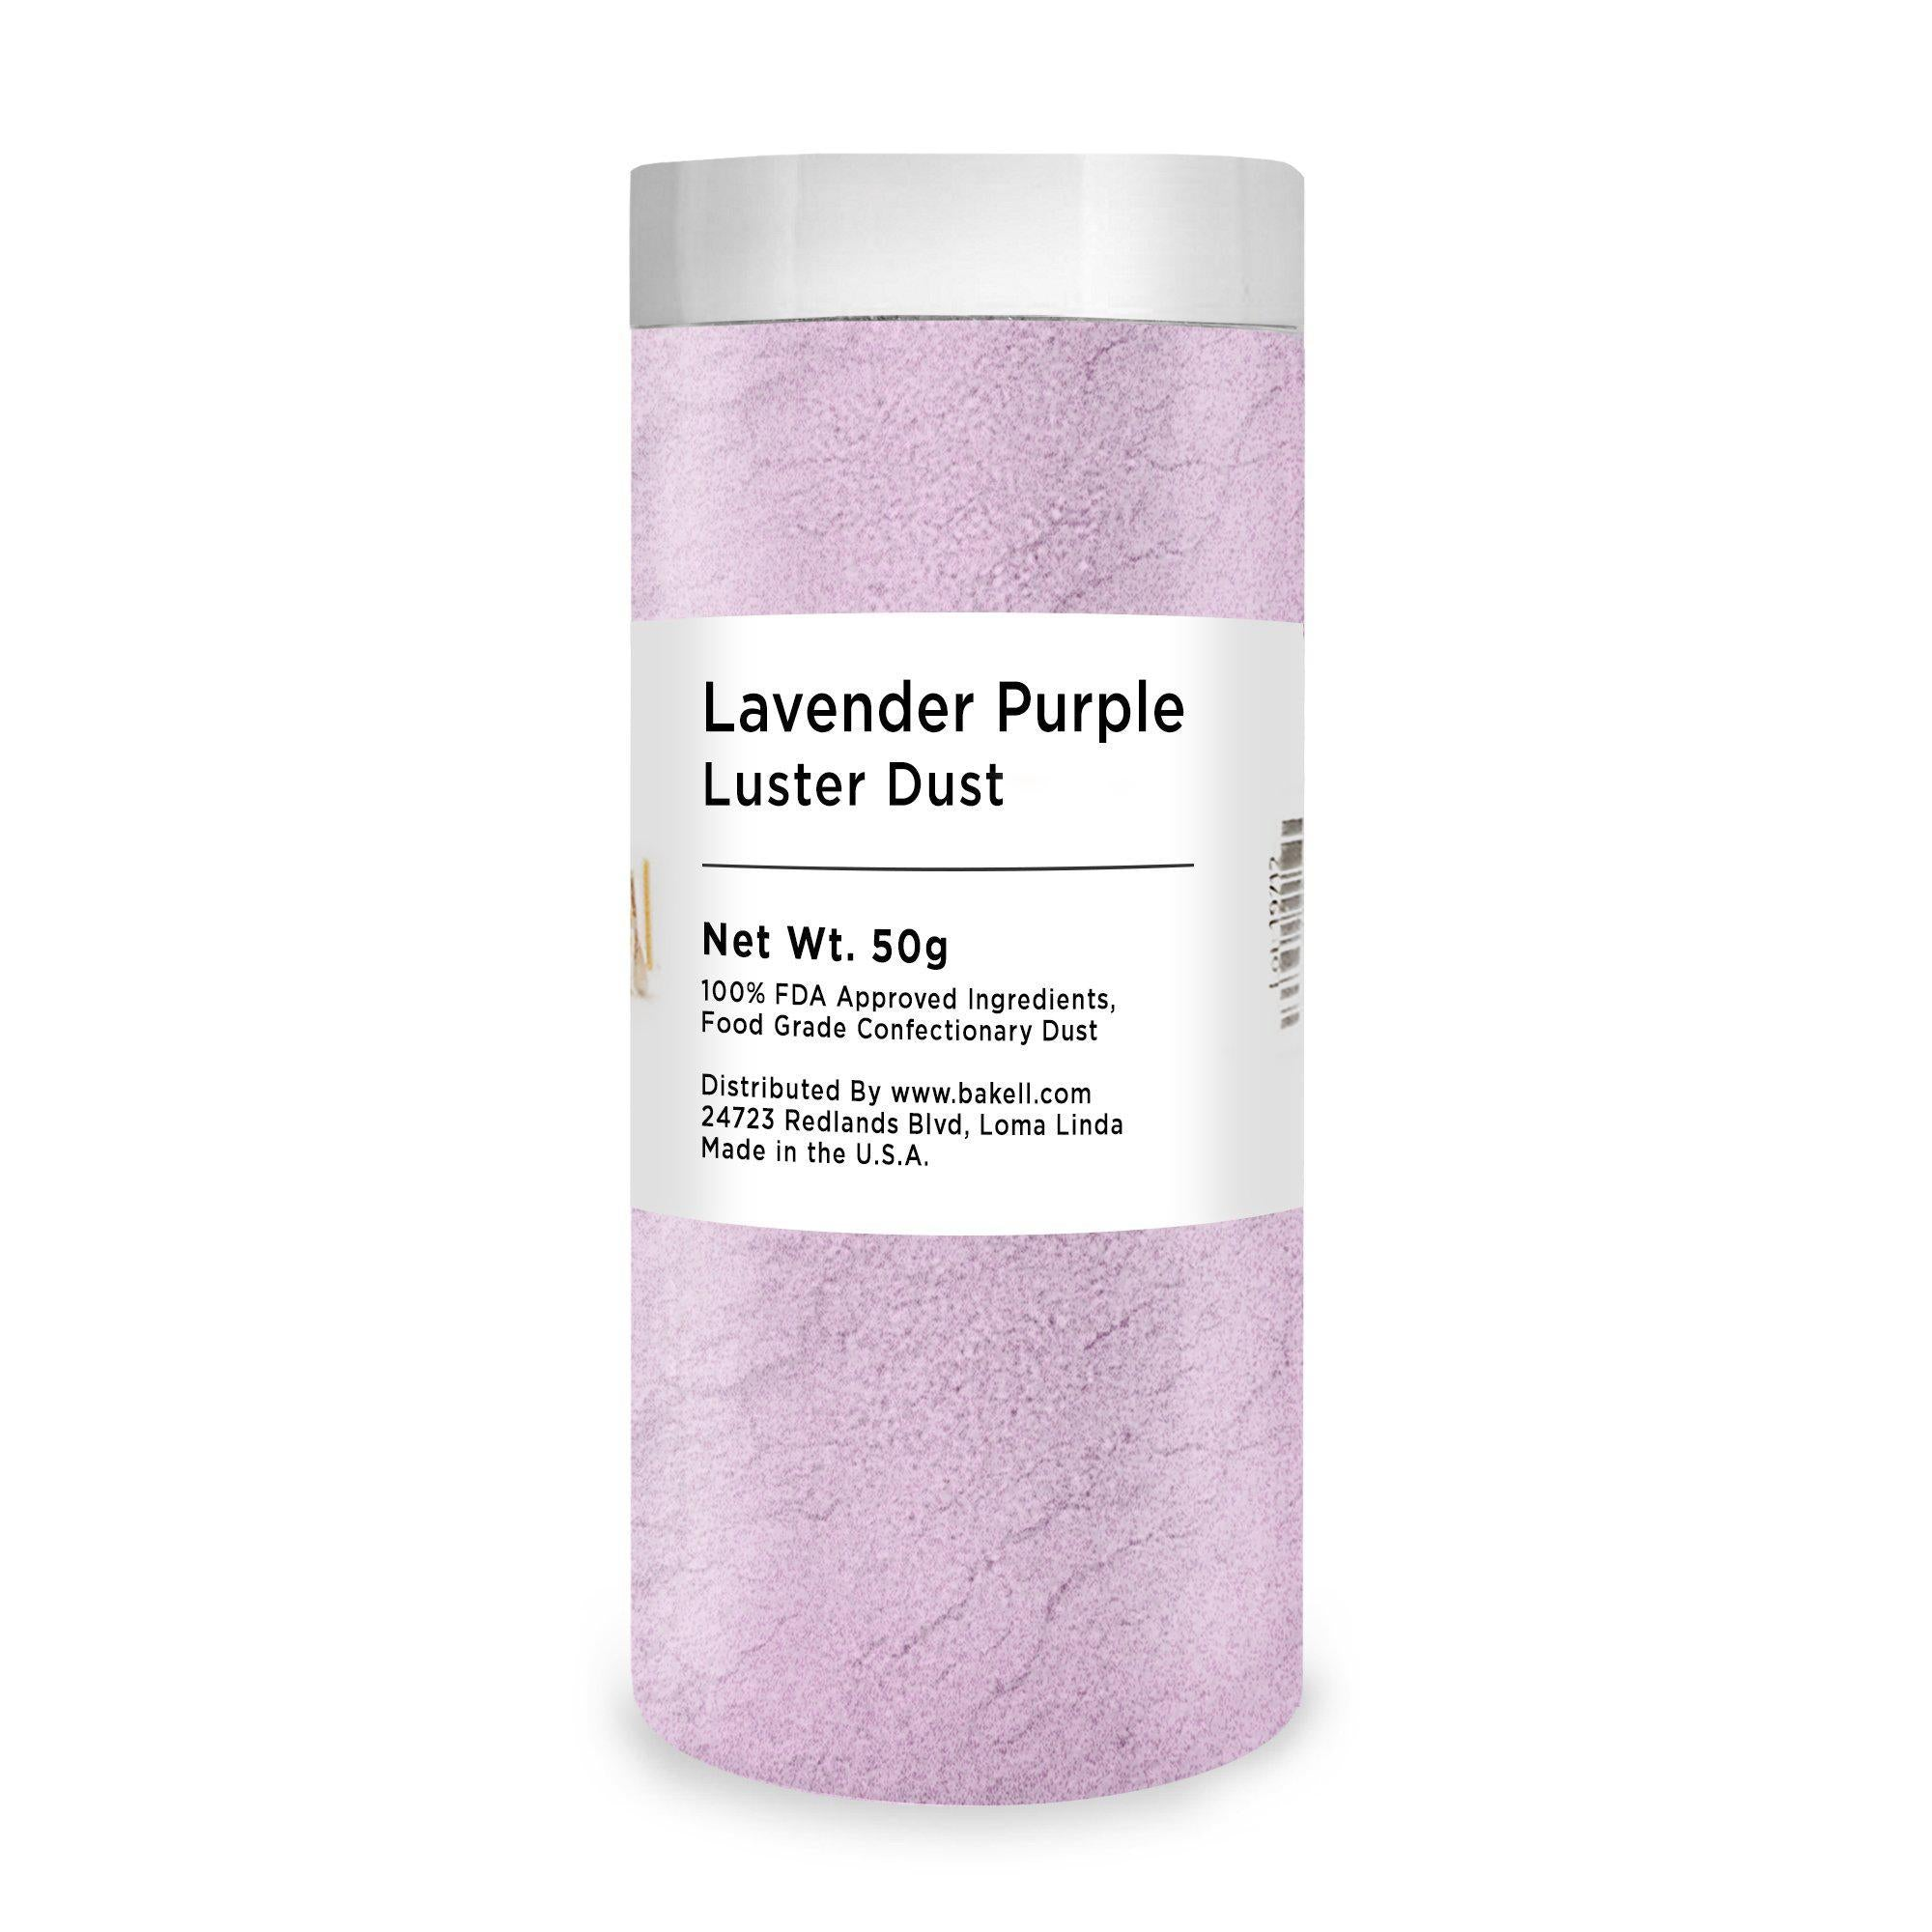 Lavender Purple Edible Luster Dust | FDA Approved Glitter & Kosher Certified Glitter | Edible Paint | MICA Powder | Bakell.com